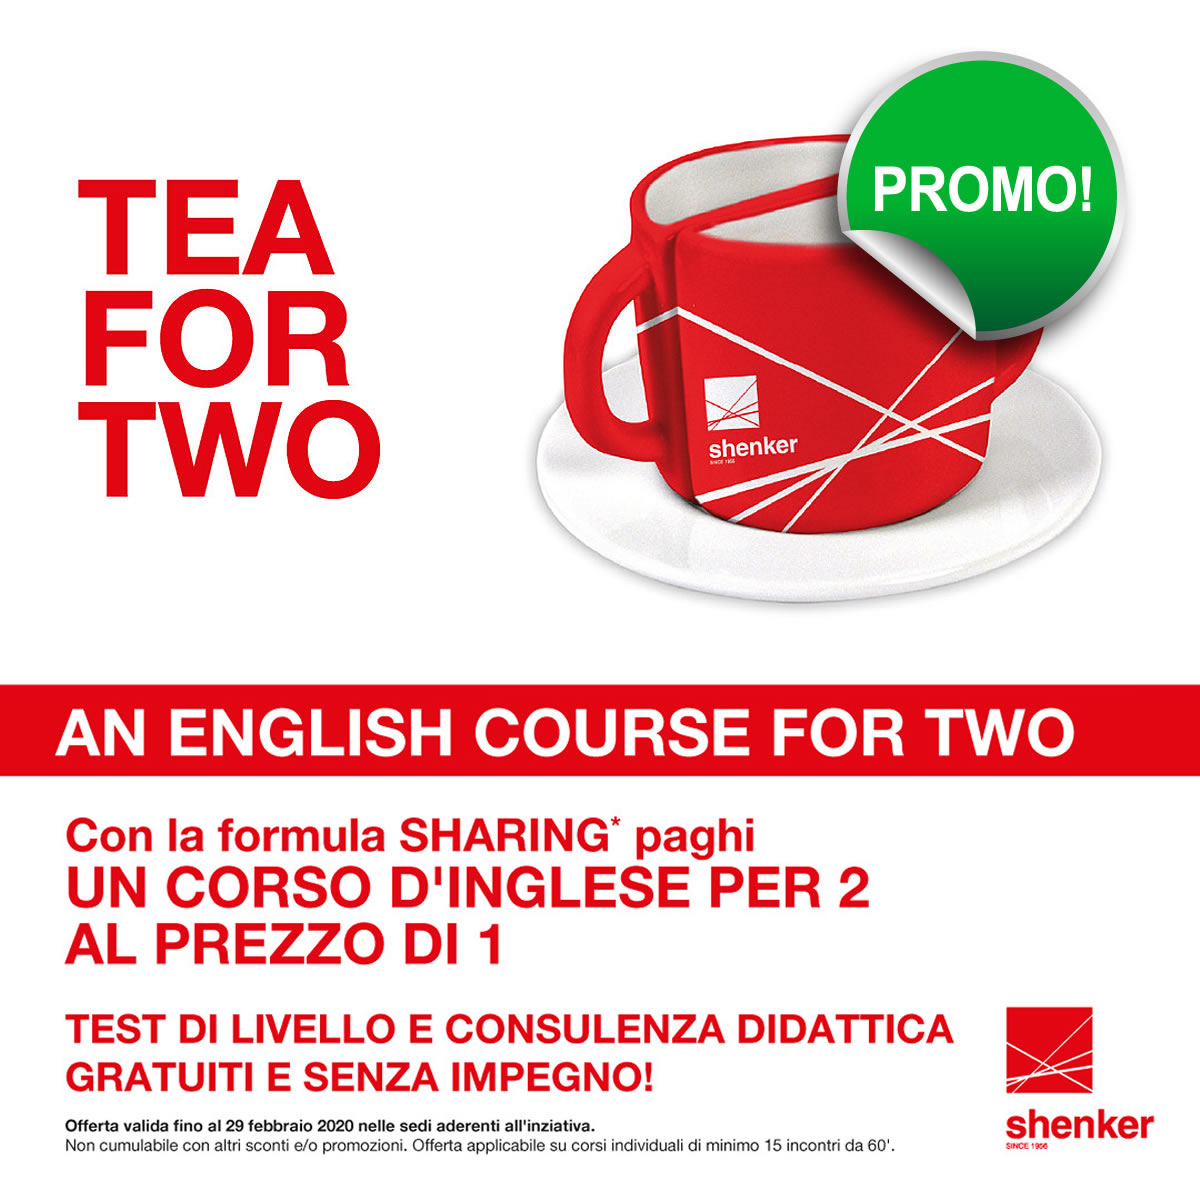 A SHENKER ENGLISH COURSE FOR TWO